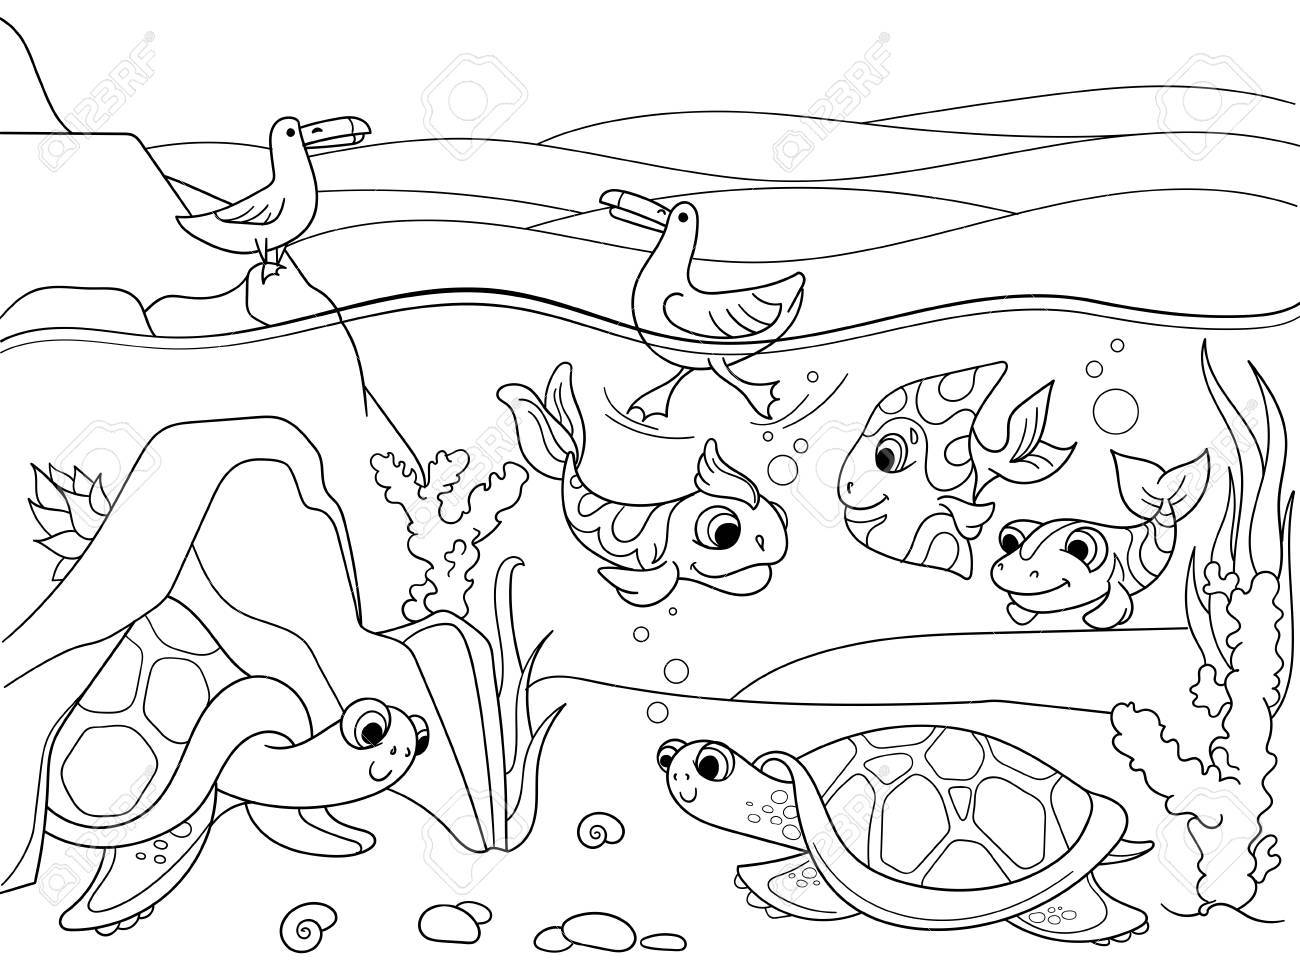 Library of zoo animals graphic library download pdf png ...